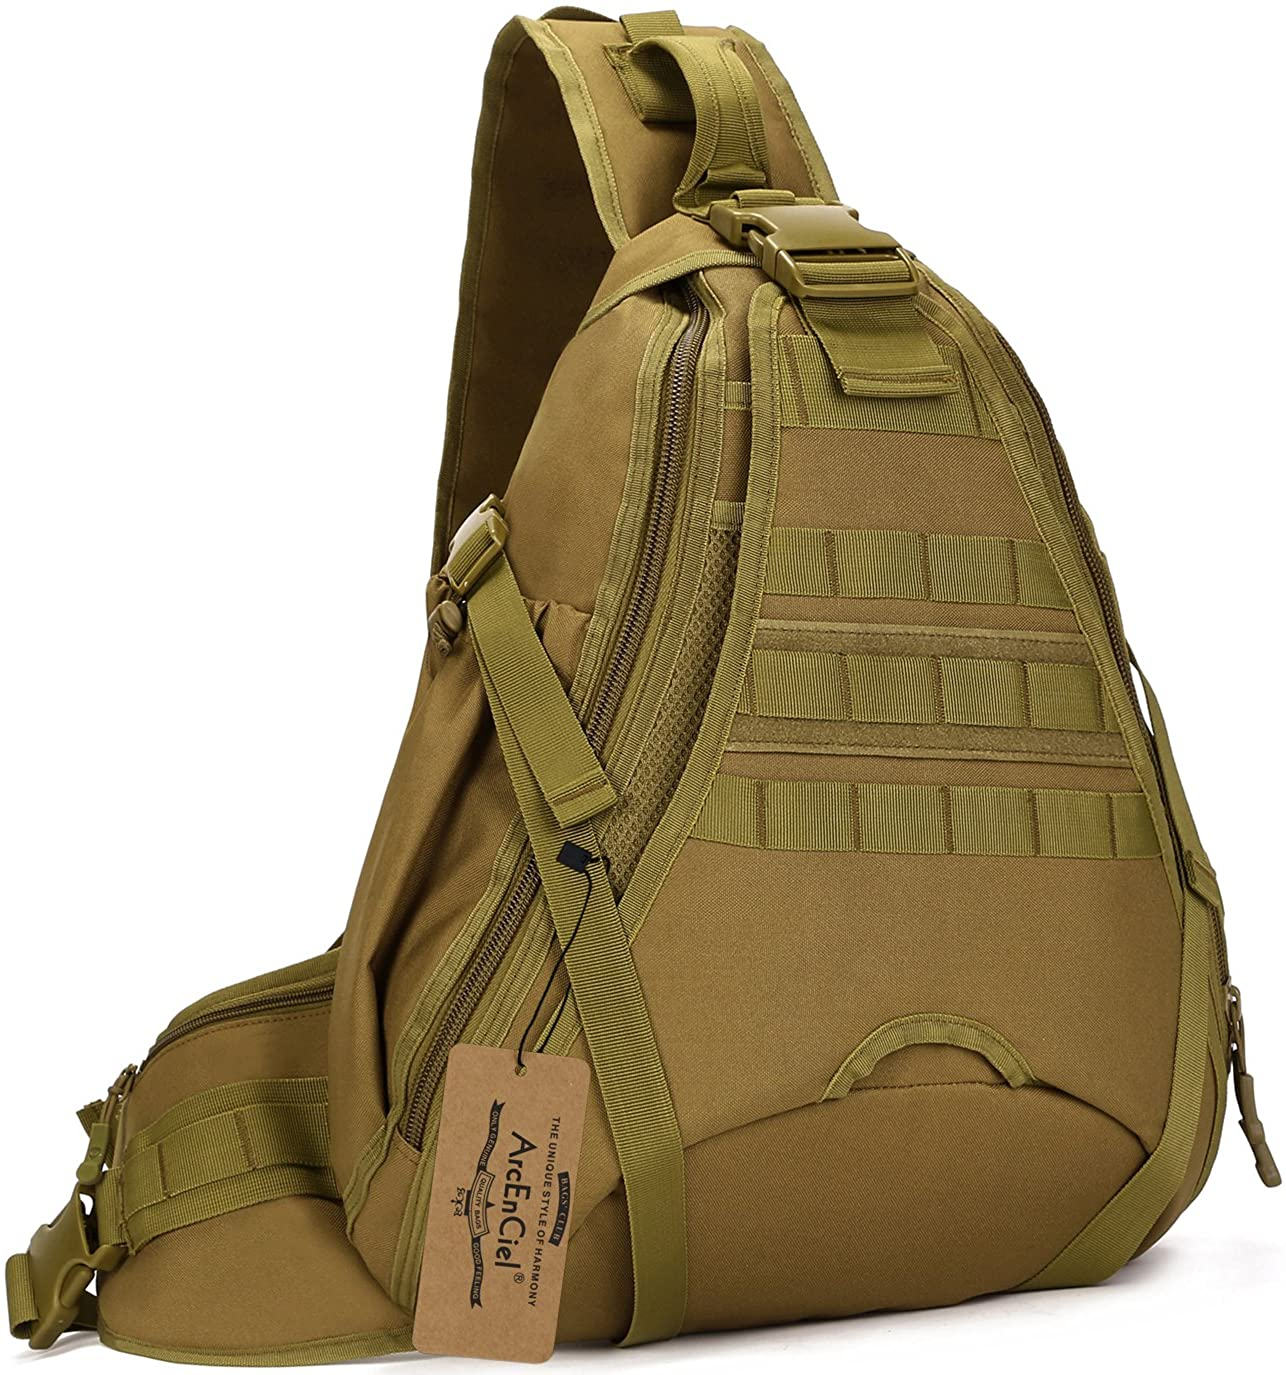 ArcEnCiel Tactical Sling Pack Military Molle Chest Crossbody Shoulder Bags Motorcycle Bicycle Assault Range Diaper Backpack